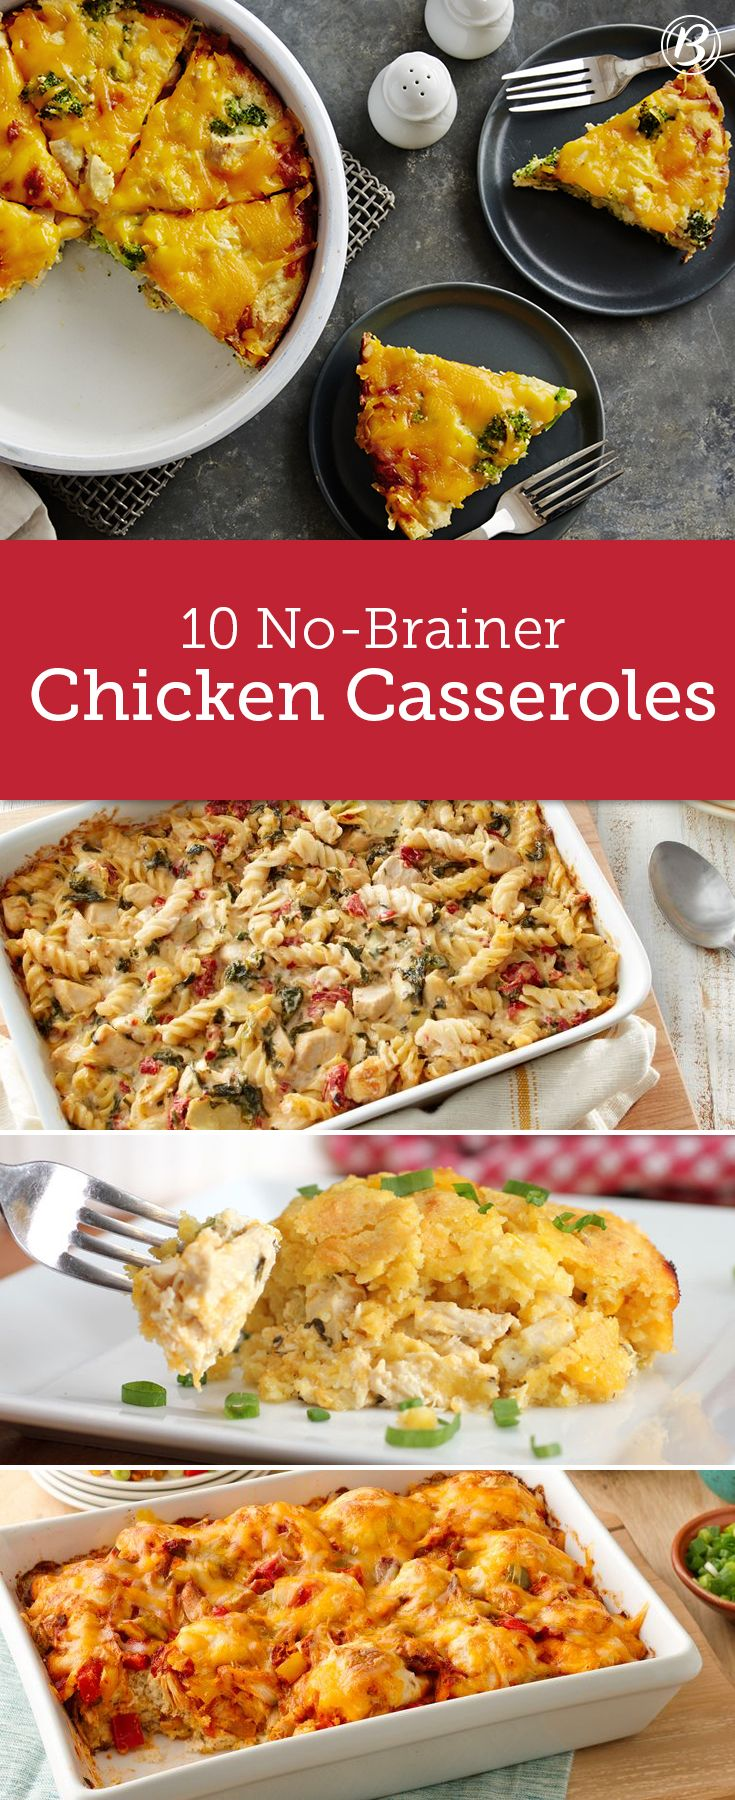 Dinner's not far off when you have chicken in the fridge and these recipes up your sleeve. As simple as they are delicious, these recipes prove chicken's not boring, it's versatile!